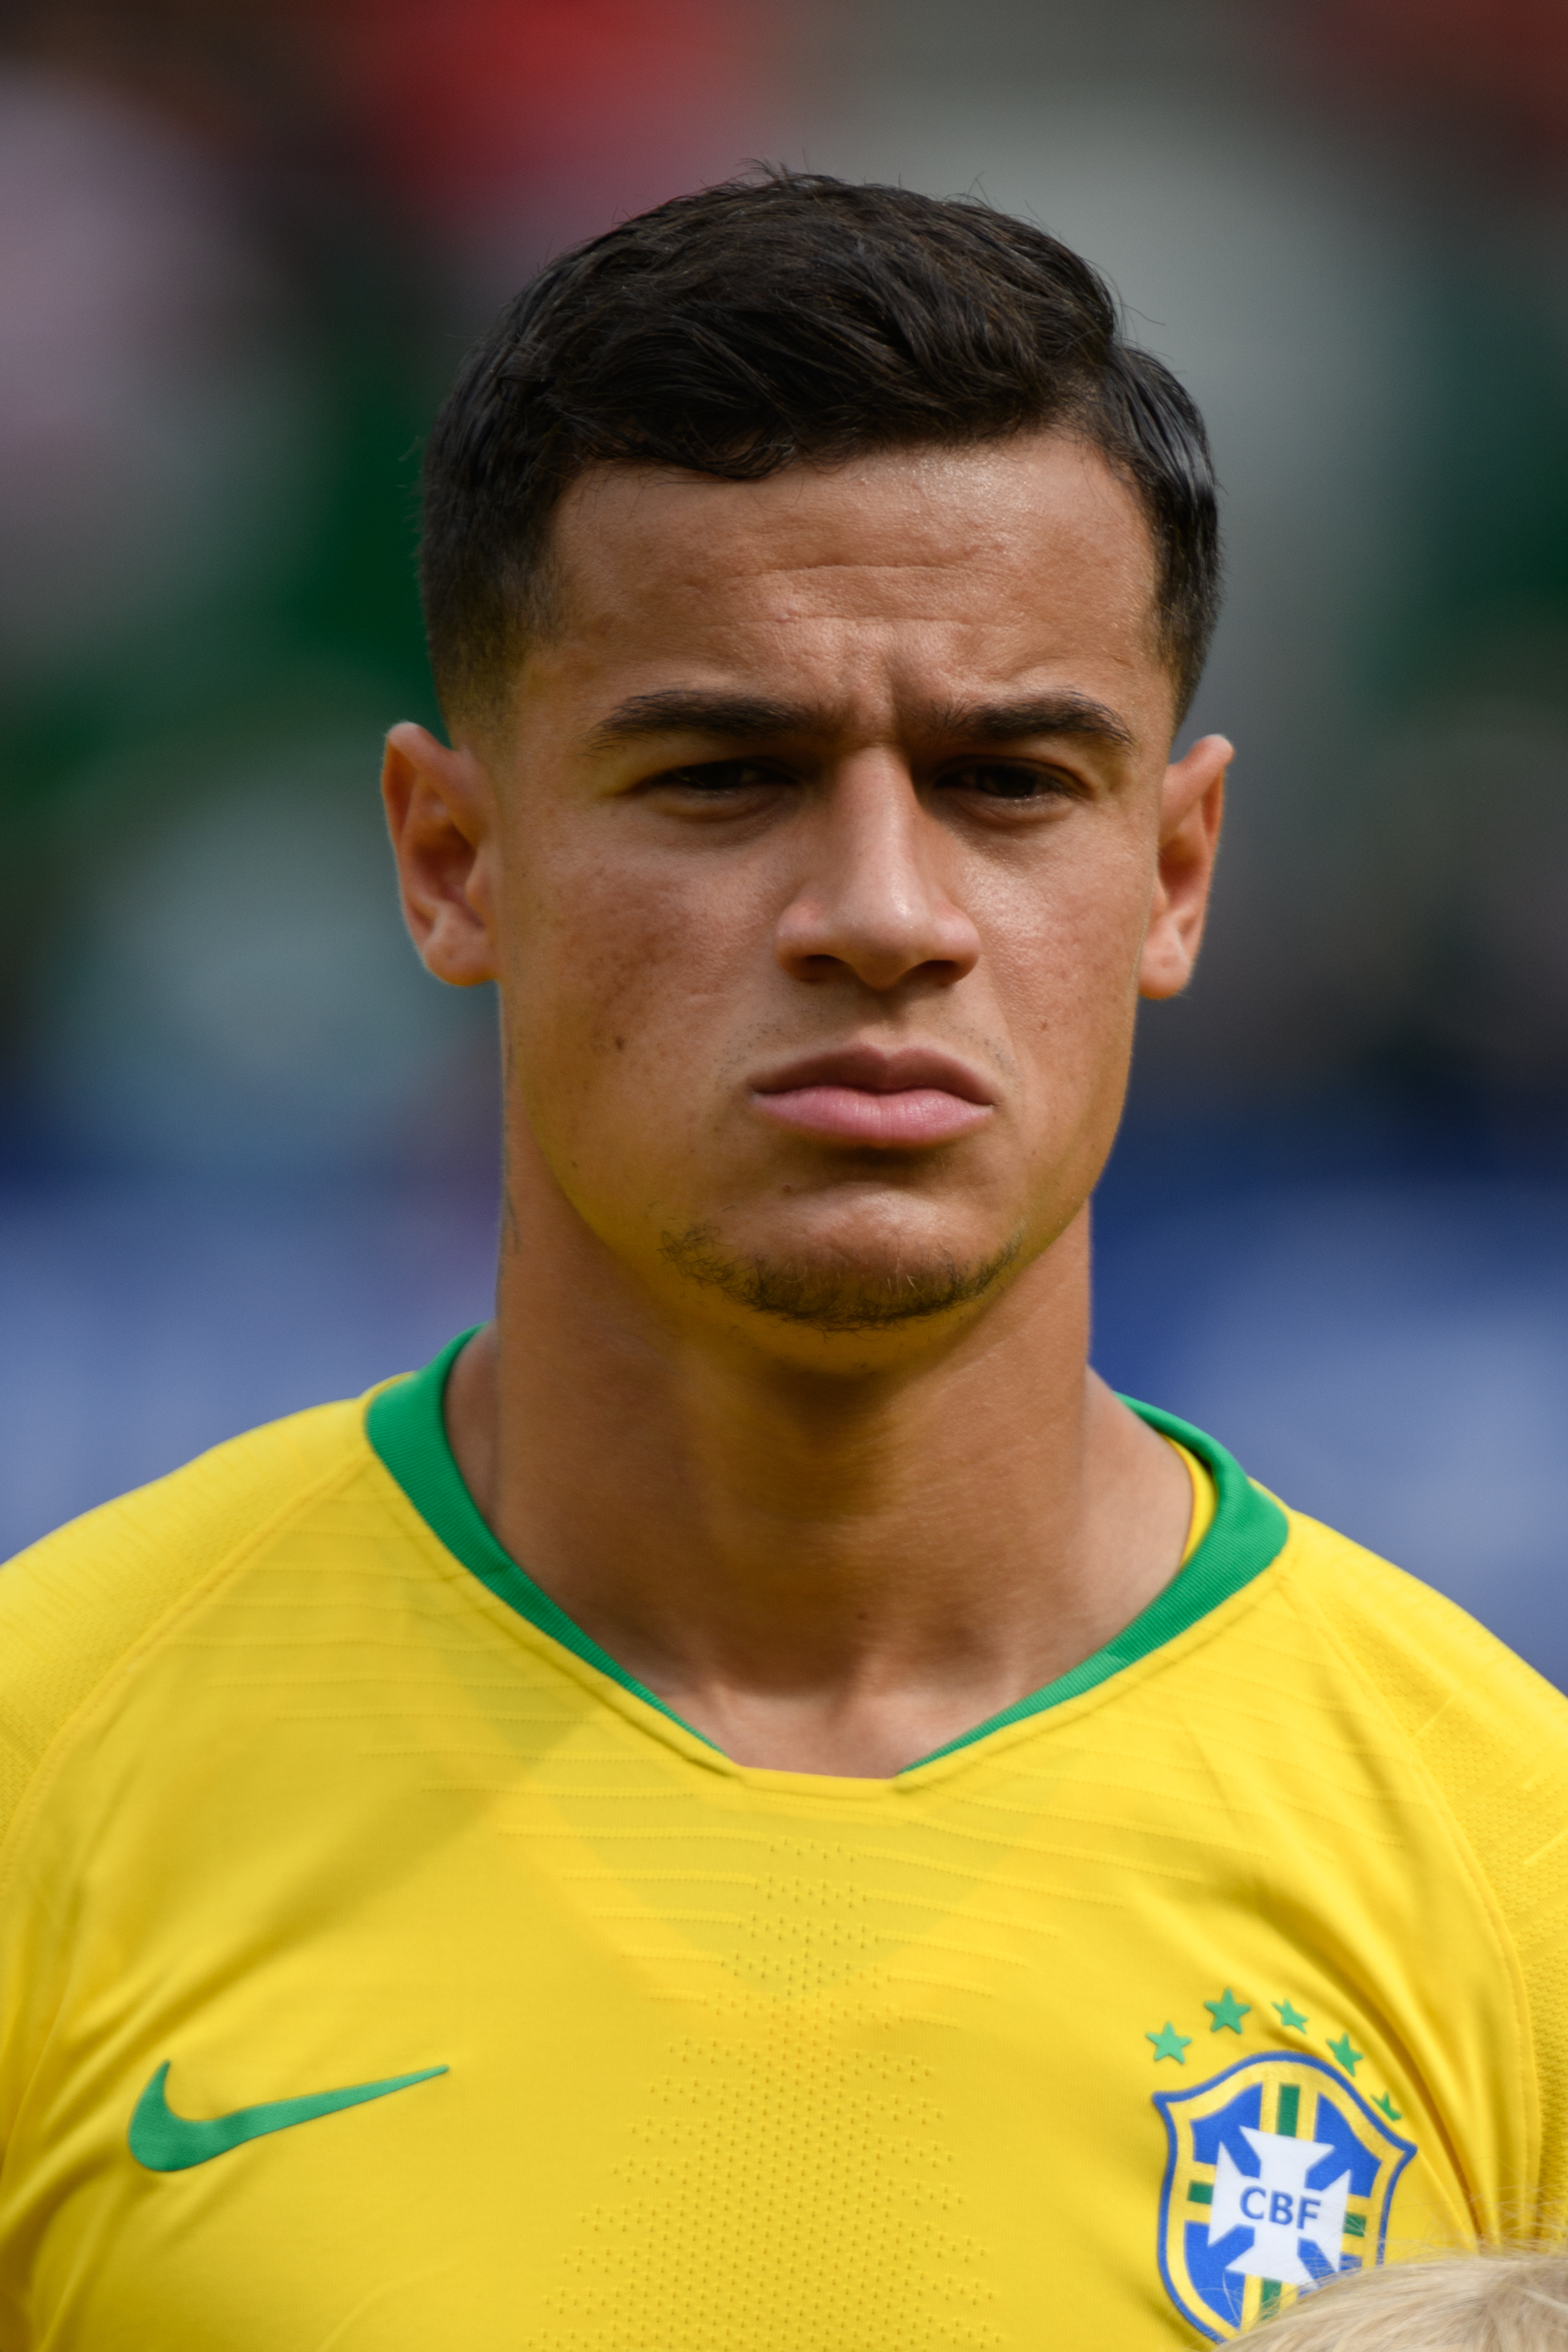 The 26-year old son of father Ze Carlos Coutinho and mother Dona Esmeralda Coutinho Philippe Coutinho in 2018 photo. Philippe Coutinho earned a 0.5 million dollar salary - leaving the net worth at 20 million in 2018